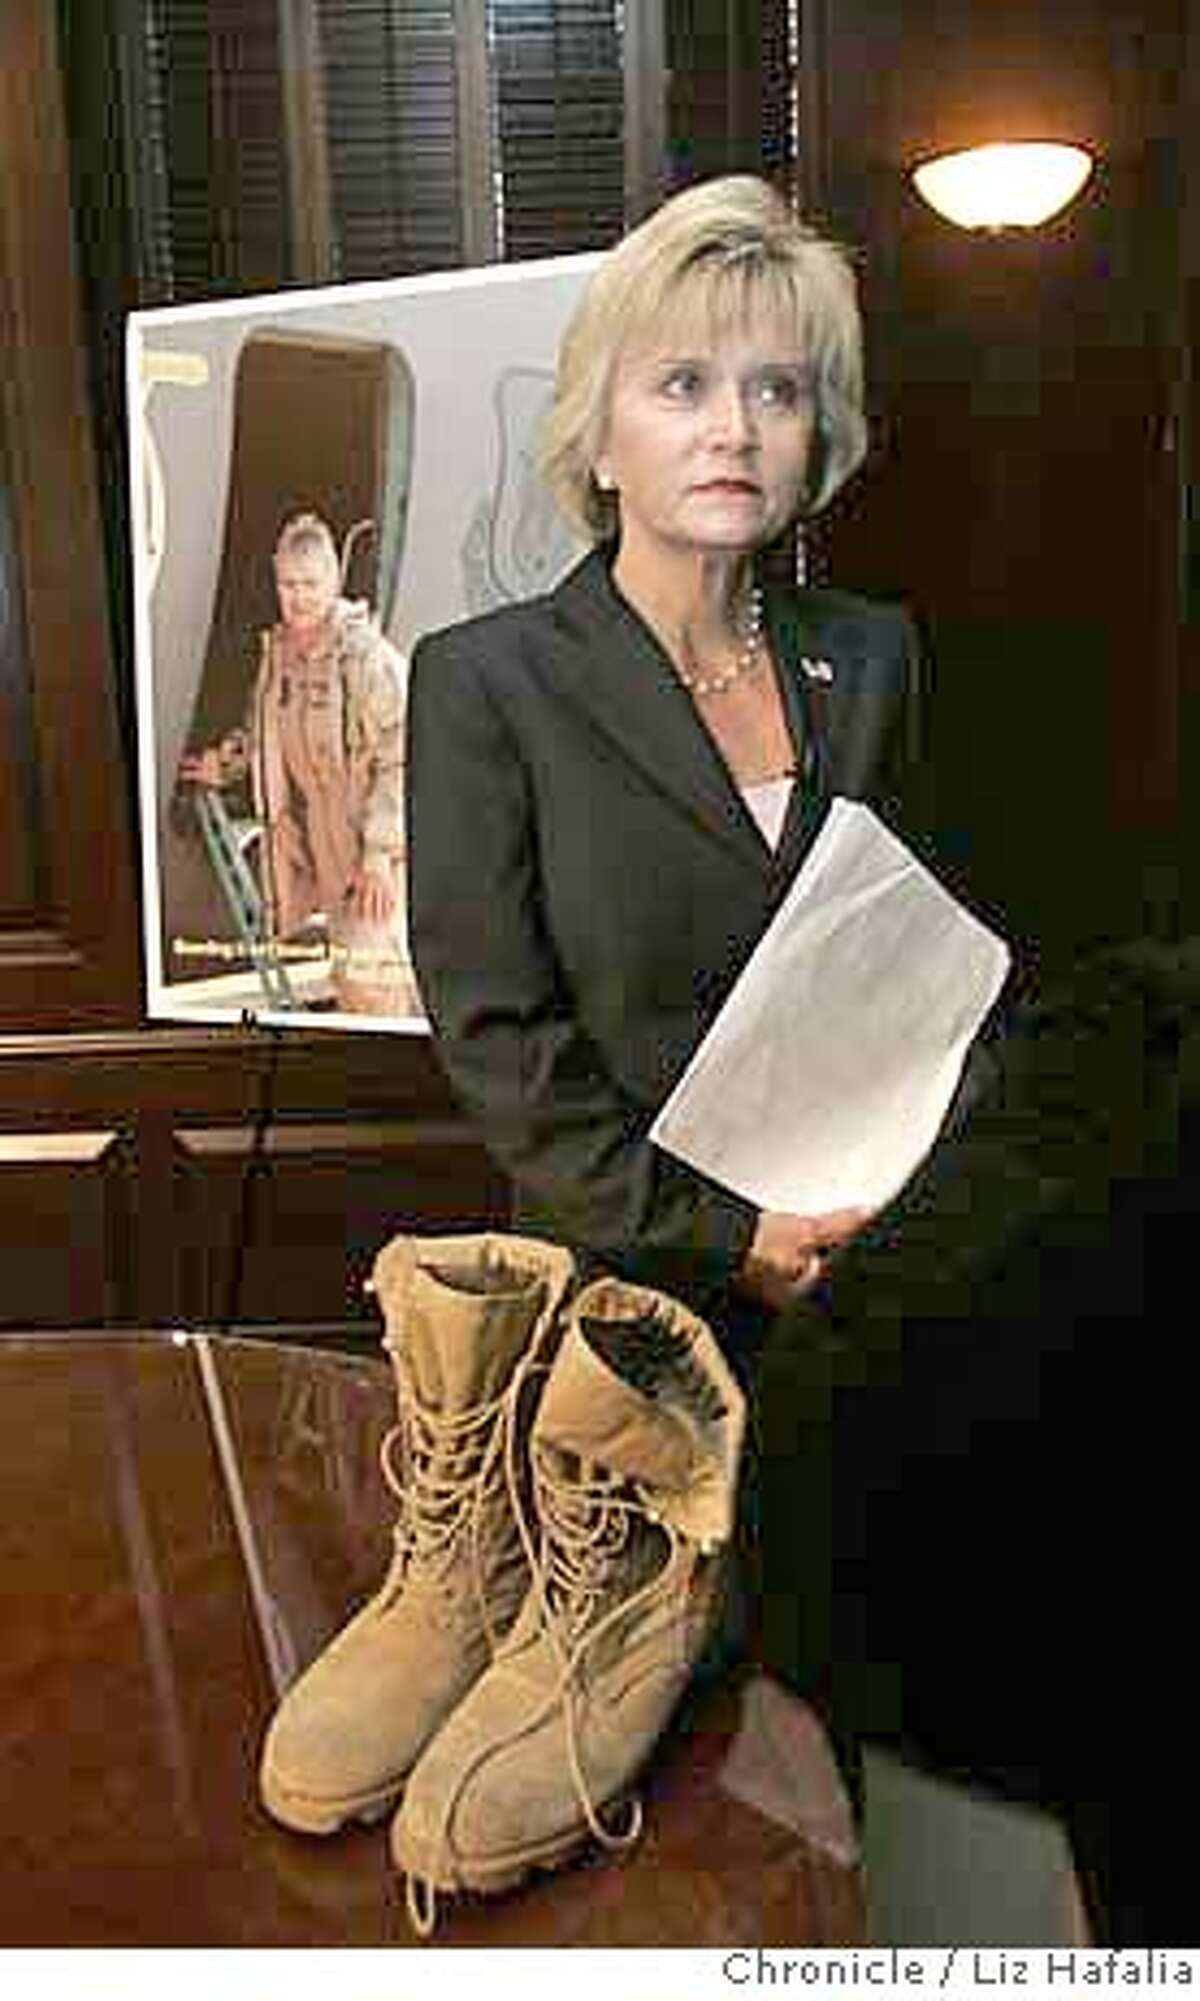 RESERVIST24_105_LH.JPG An Air Force reserve officer, Lieutenant Colonel Debra Muhl, announces a federal lawsuit against her employer, a California health facility, after she says she was fired following her second deployment to the Middle East. Photographed by Liz Hafalia